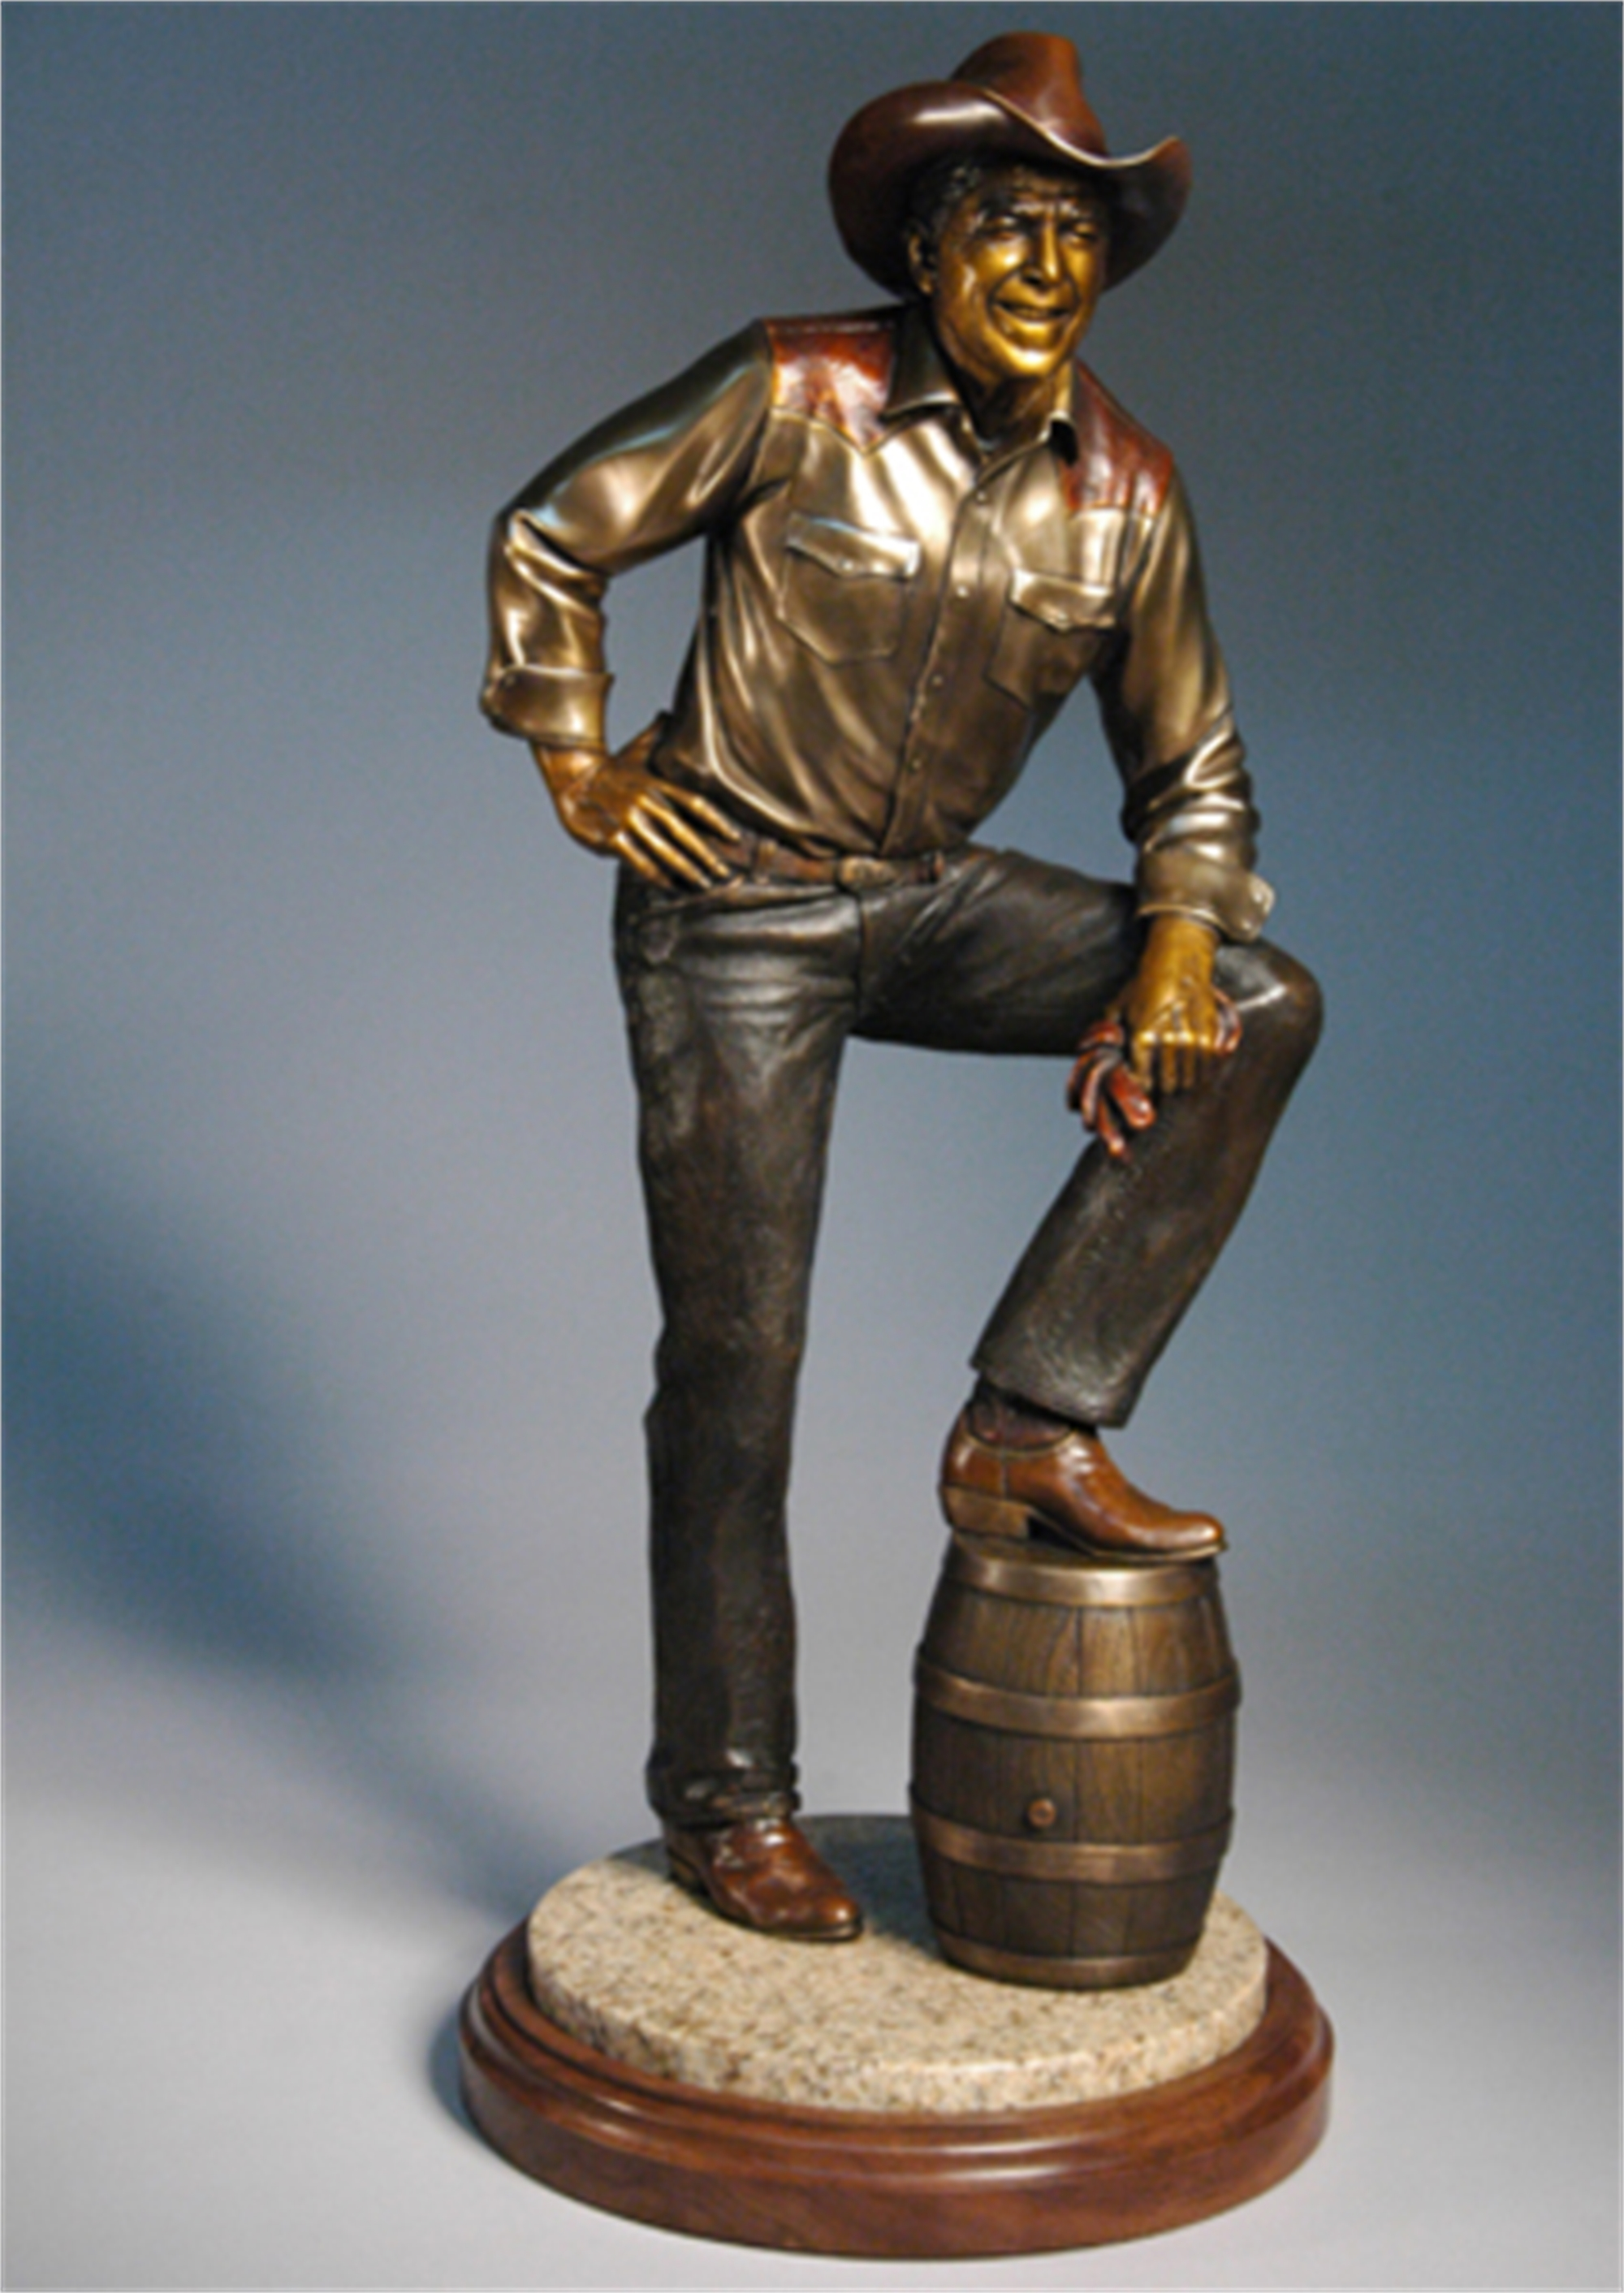 Reagan by George Lundeen